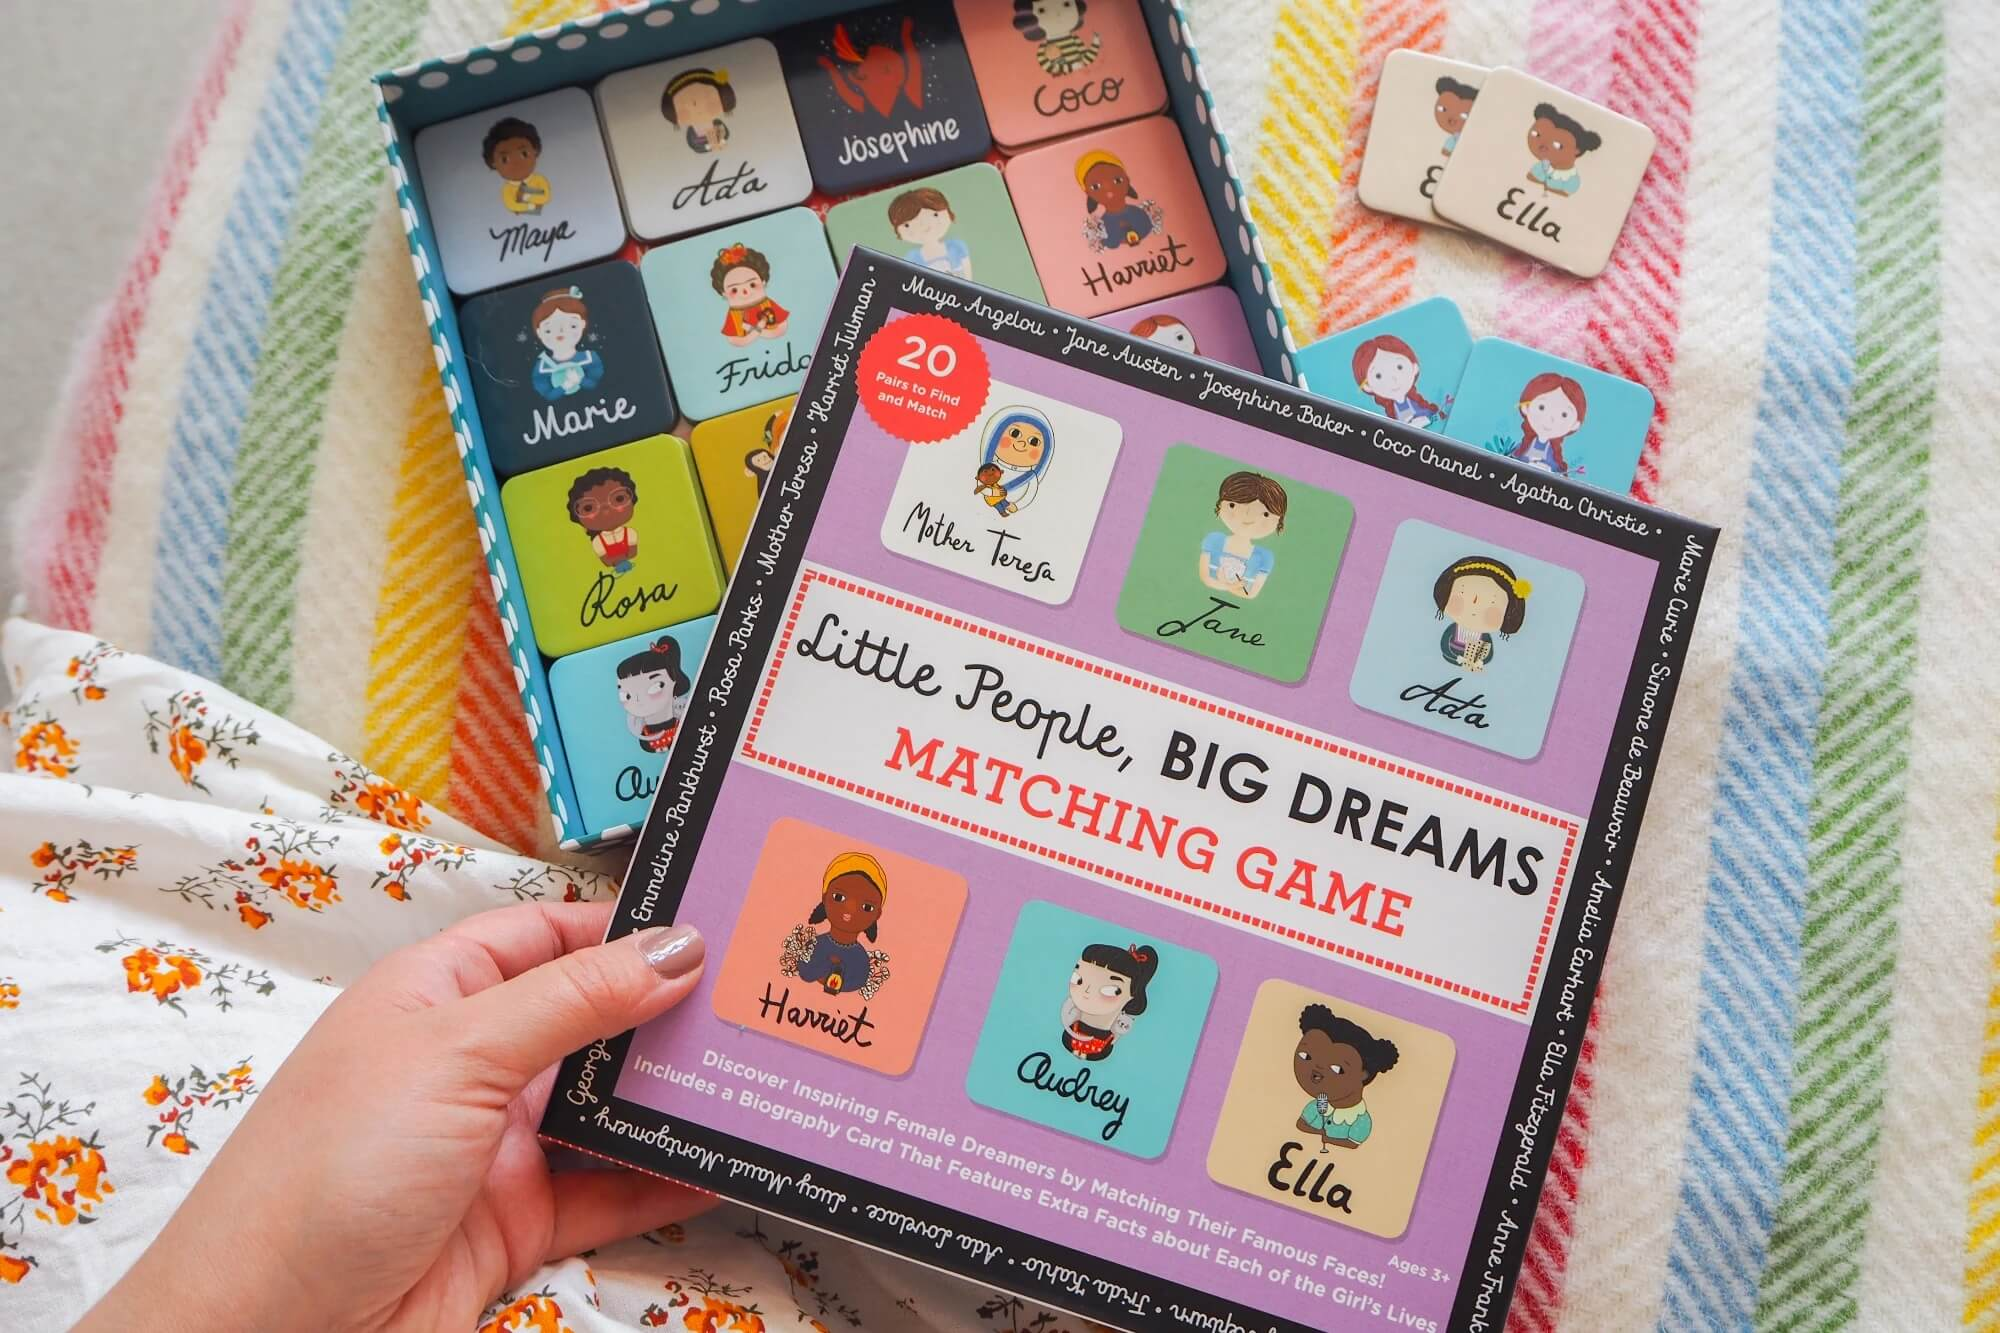 Https://muthahoodgoods.com/products/little-people-big-dreams-matching-game